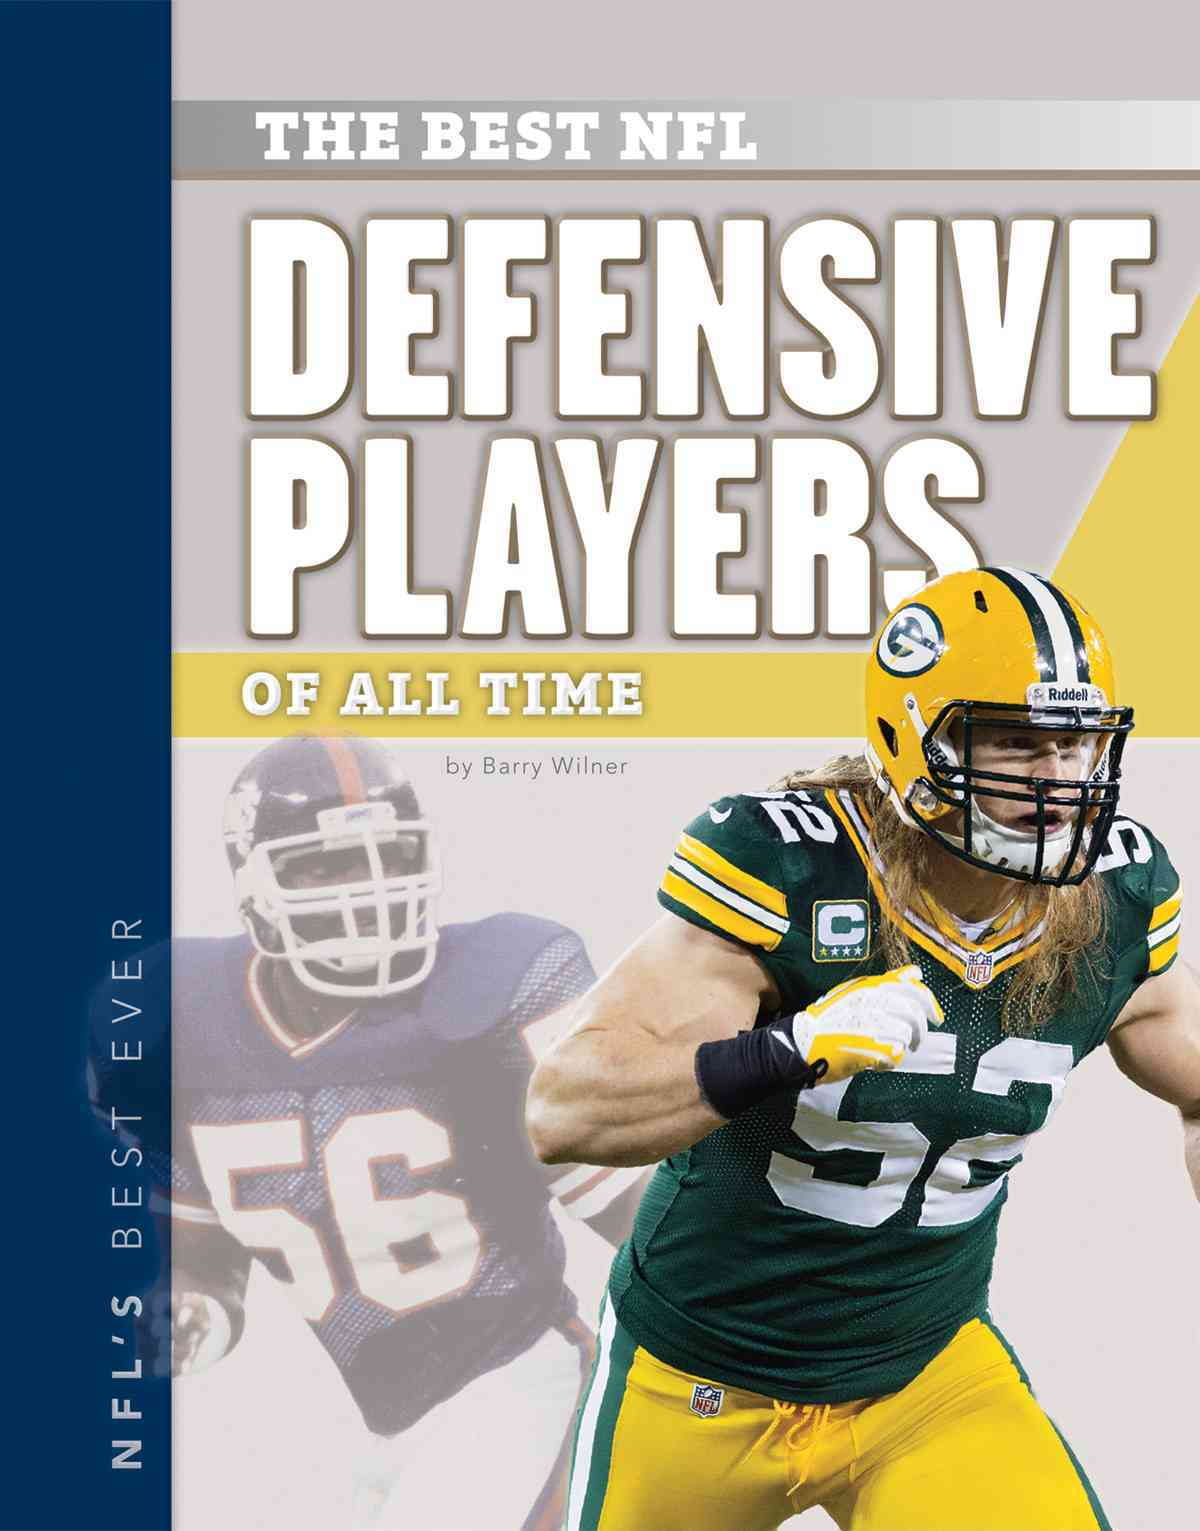 Best NFL Defensive Players of All Time By Wilner, Barry